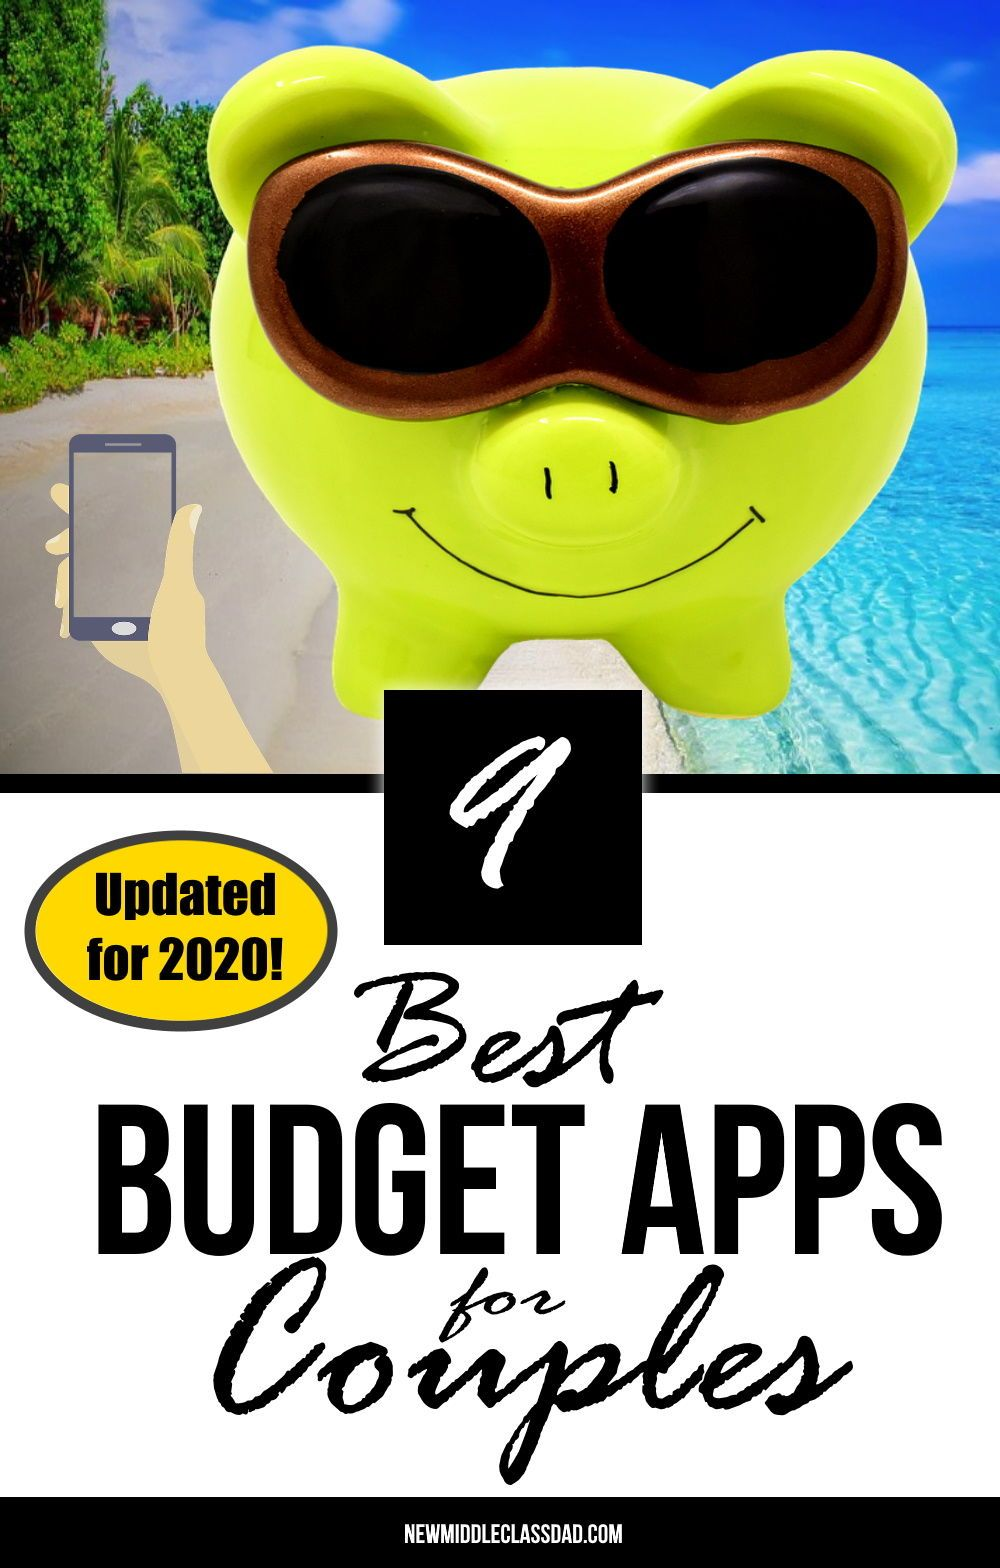 9 Best Budget Apps for Couples You Need in 2020 Best